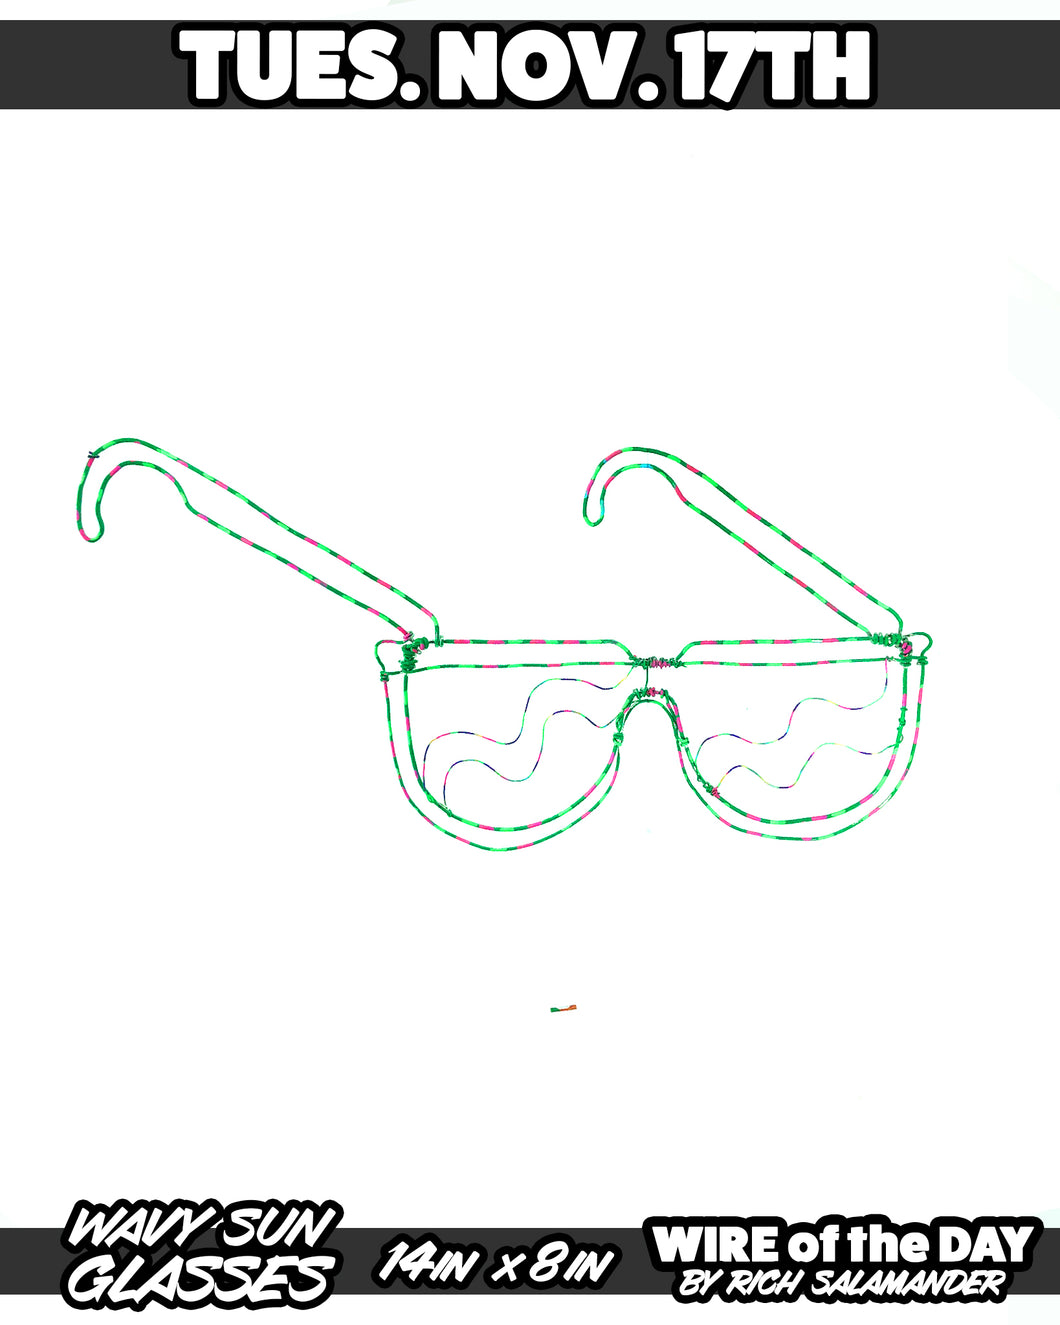 WIRE of the DAY WAVY SUN GLASSES